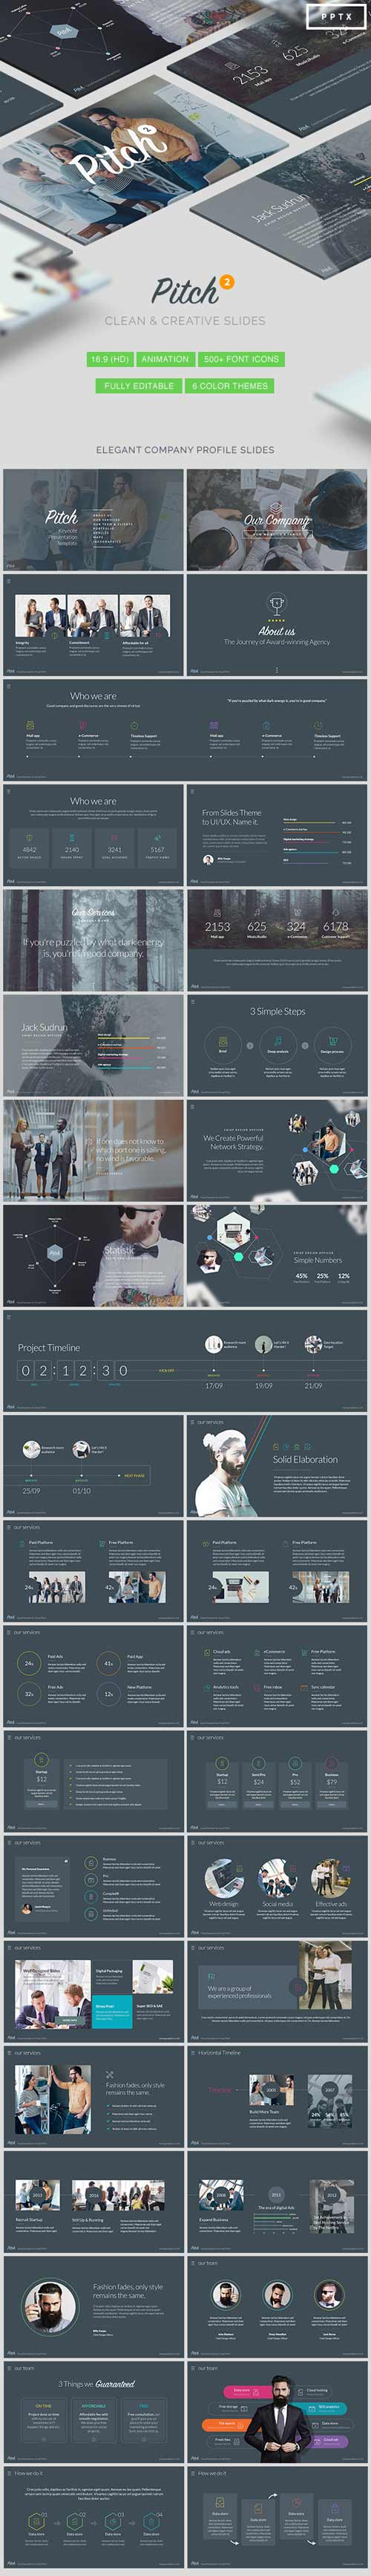 Pitch Vol.2 - Modern Powerpoint Template 17735366